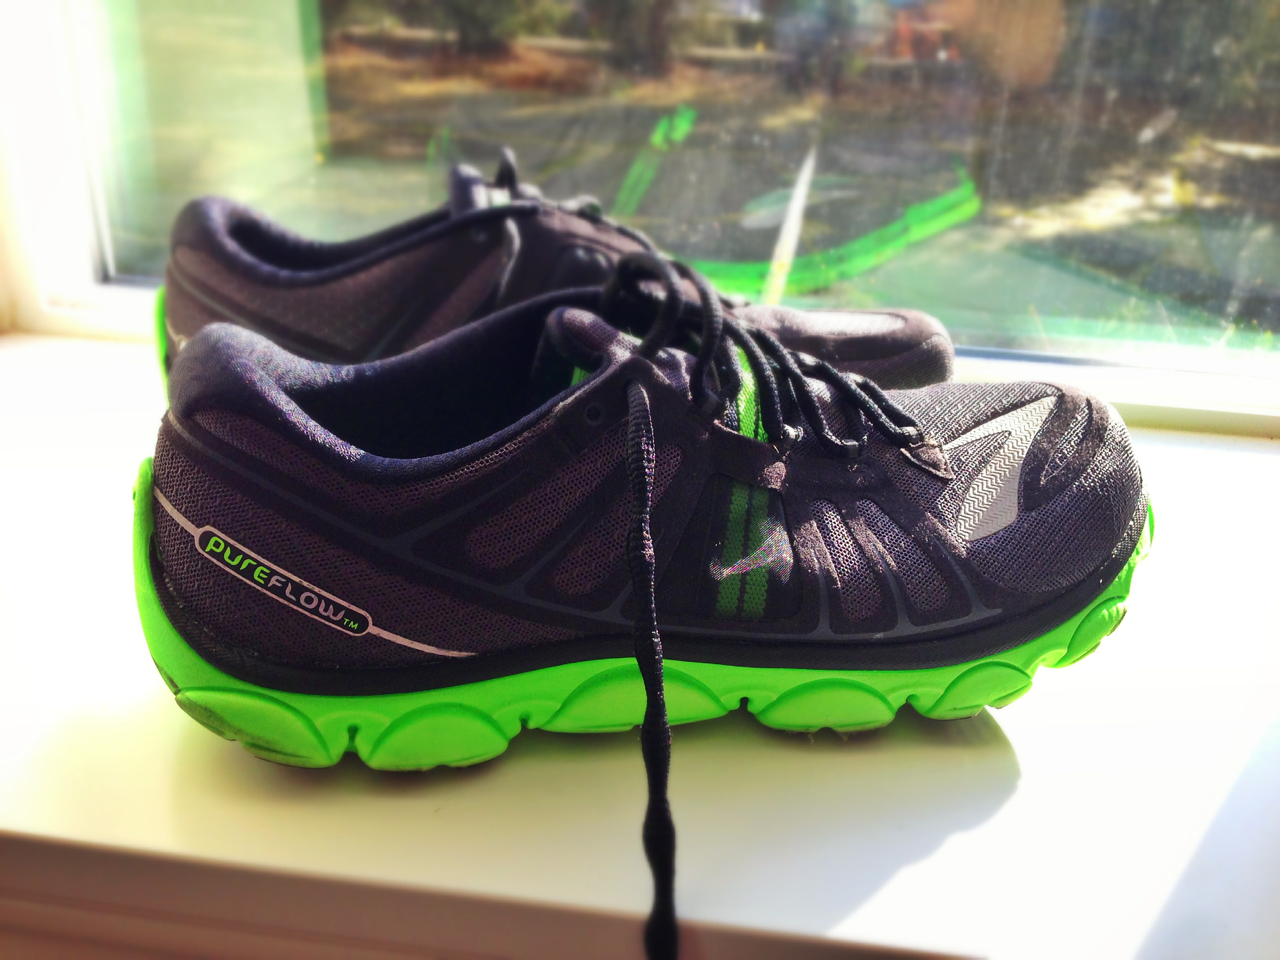 Most comfortable running shoe I've ever worn. Go snag a pair!